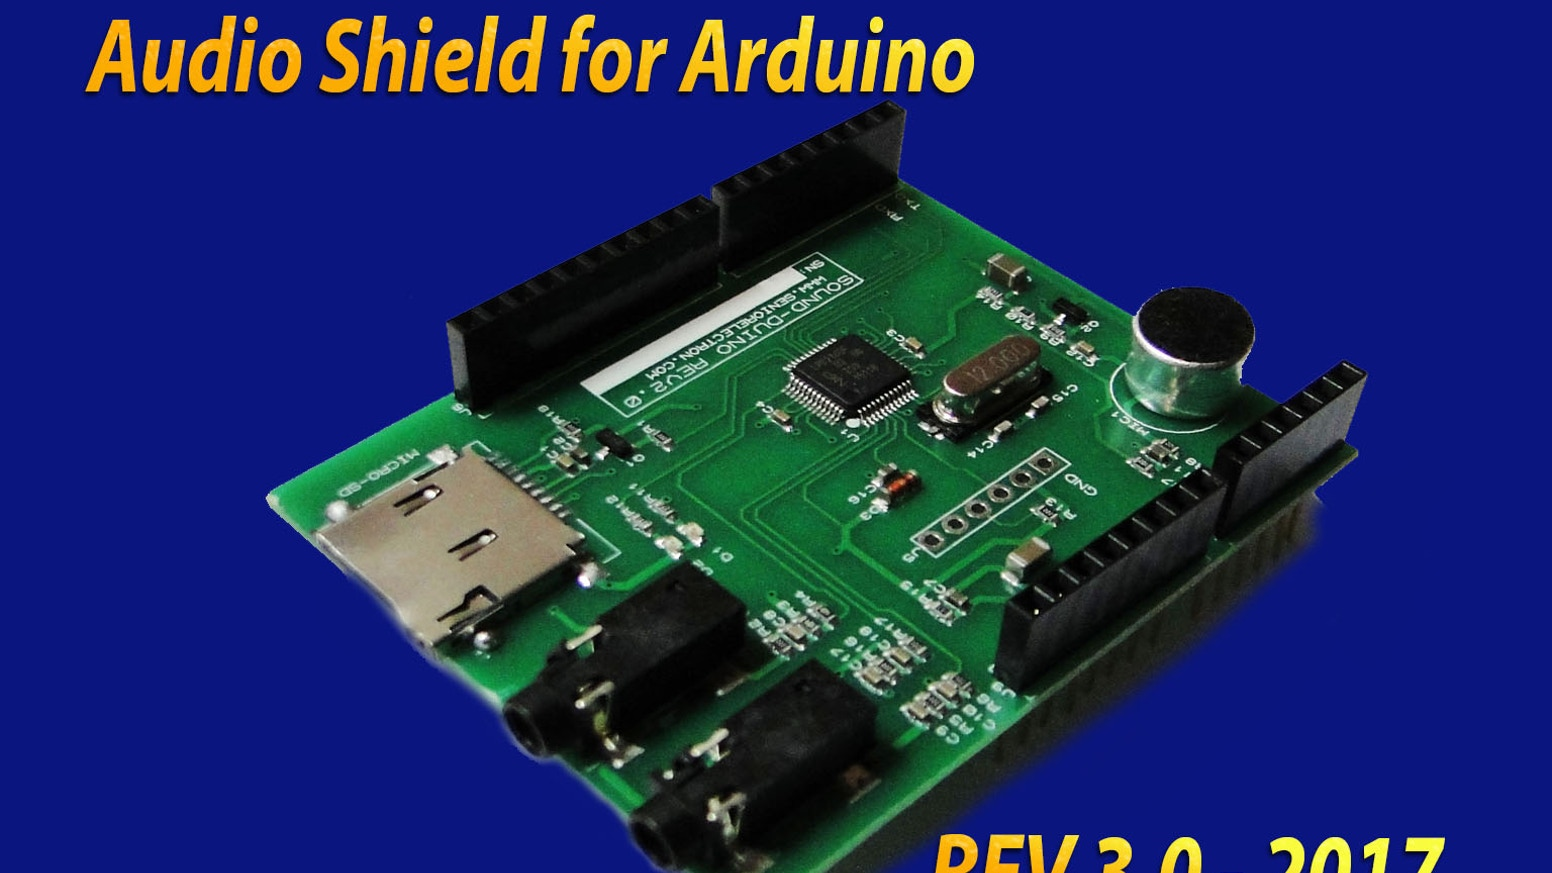 3rd Generation of SoundDuino. Audio shield for Arduino with  higher audio quality and more functions